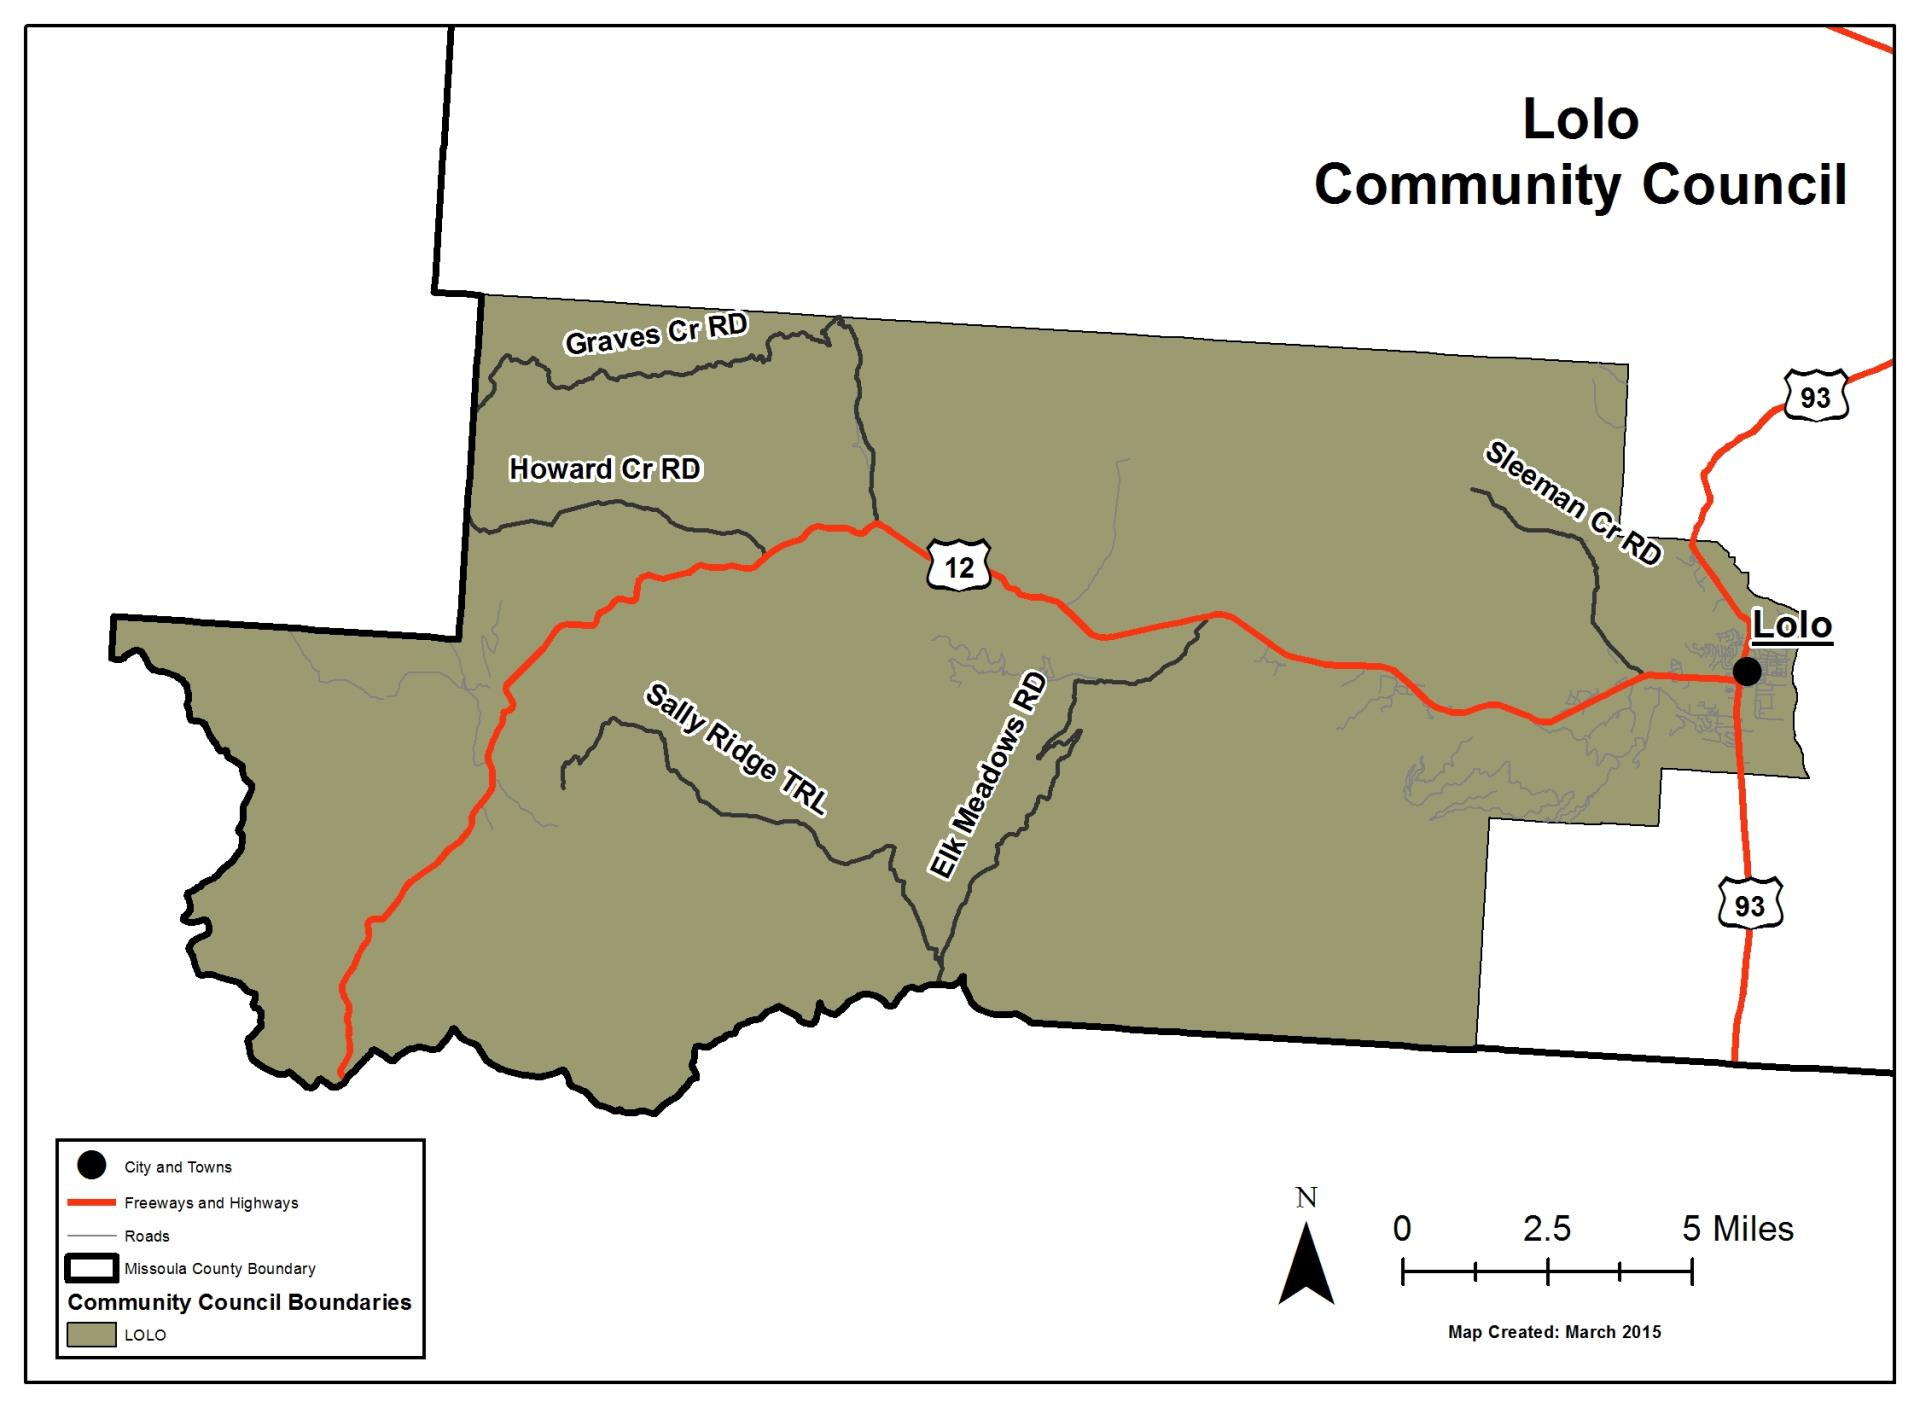 Lolo Community Council | Missoula County, MT on map of syracuse ny city limits, map of knoxville tn city limits, map of odessa tx city limits, map of charlotte nc city limits, map of richmond va city limits, map of houston tx city limits, map of lincoln ne city limits, map of bellingham wa city limits, map of san antonio tx city limits, map of jacksonville nc city limits, map of duluth mn city limits, map of spokane wa city limits, map of gainesville fl city limits, map of martinsburg wv city limits, map of morgantown wv city limits, map of montgomery al city limits, map of rochester mn city limits, map of toledo oh city limits, map of murfreesboro tn city limits, map of rapid city sd city limits,